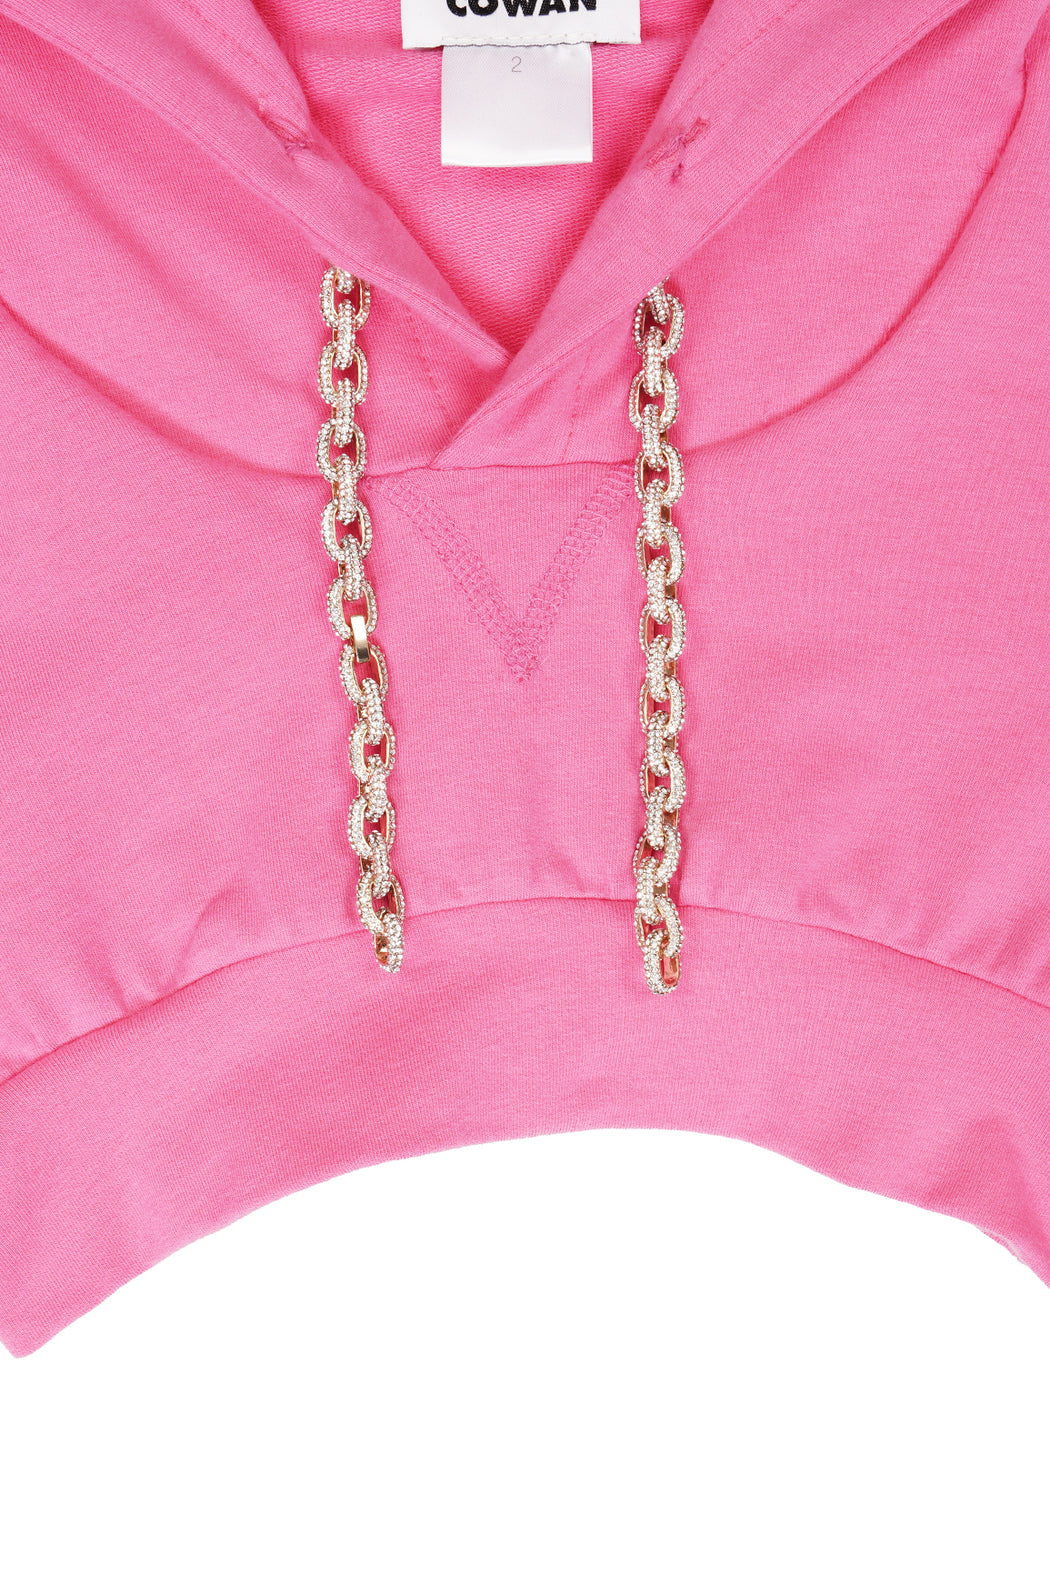 Cropped Sweatshirt - Pink